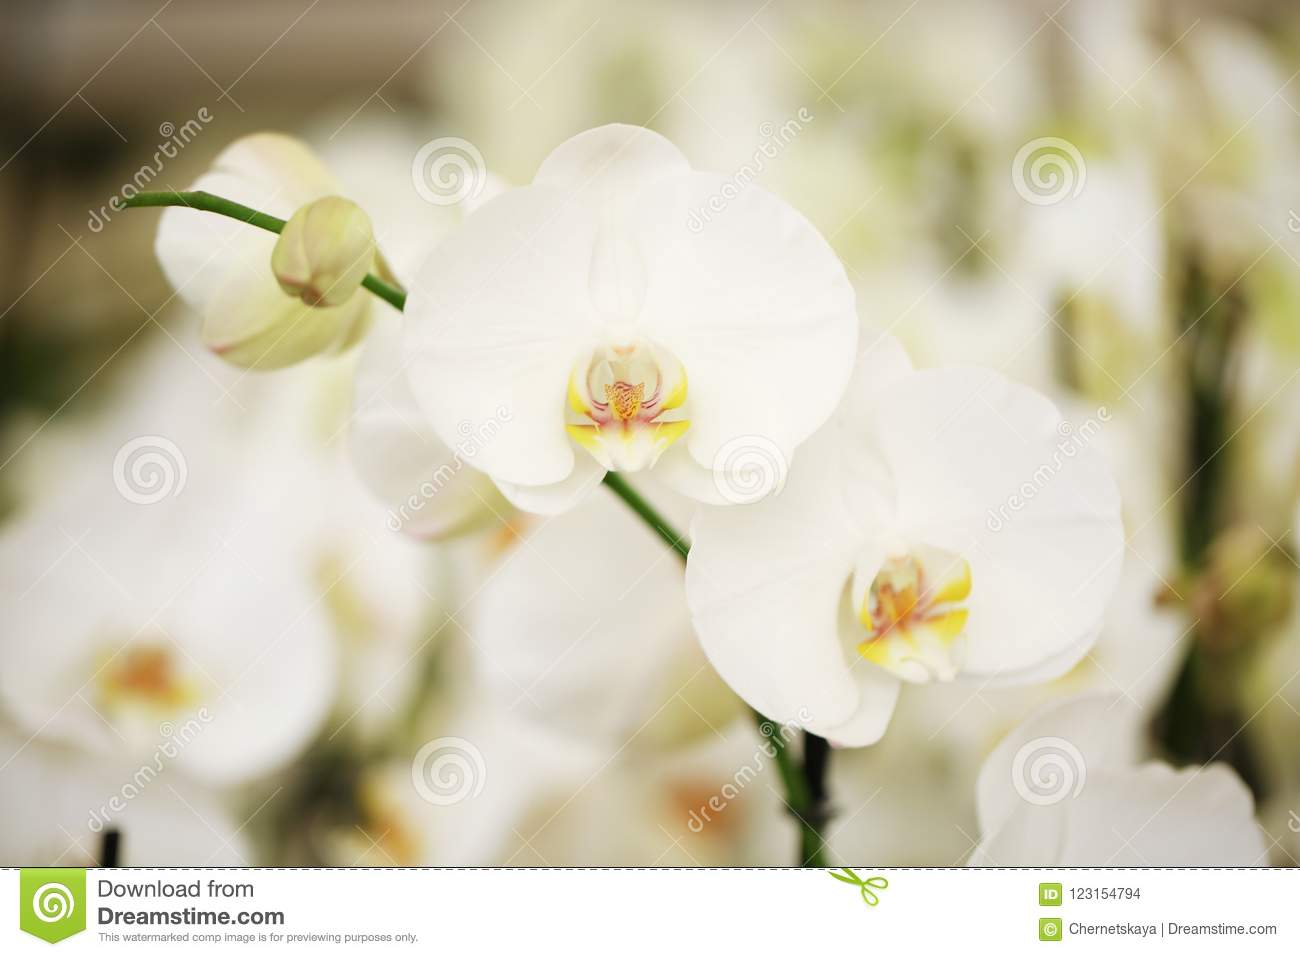 Beautiful White Orchid Flowers On Blurred Background Stock Photo